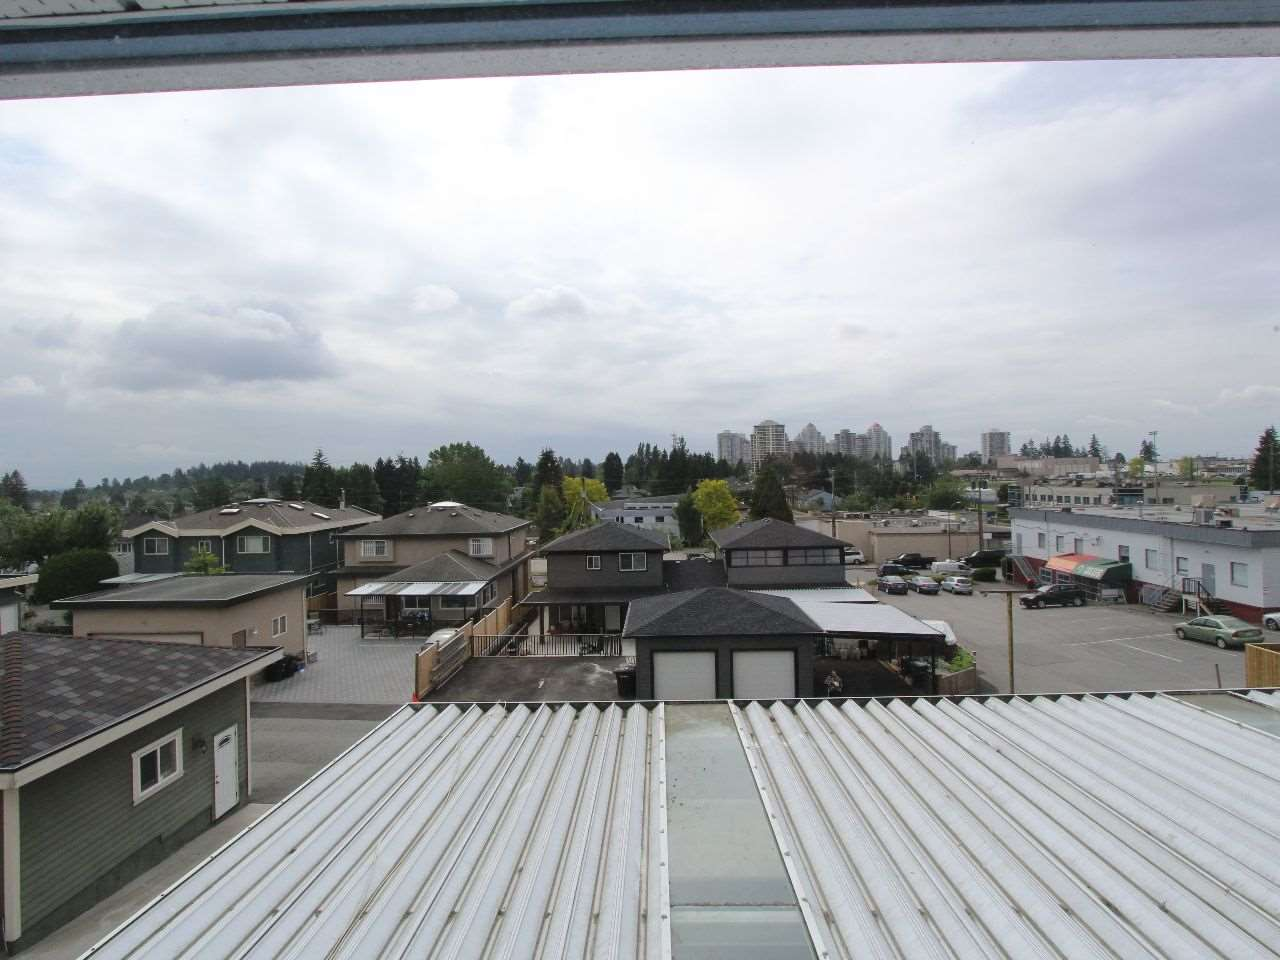 Photo 15: 7926 12TH Avenue in Burnaby: East Burnaby House for sale (Burnaby East)  : MLS® # R2071909